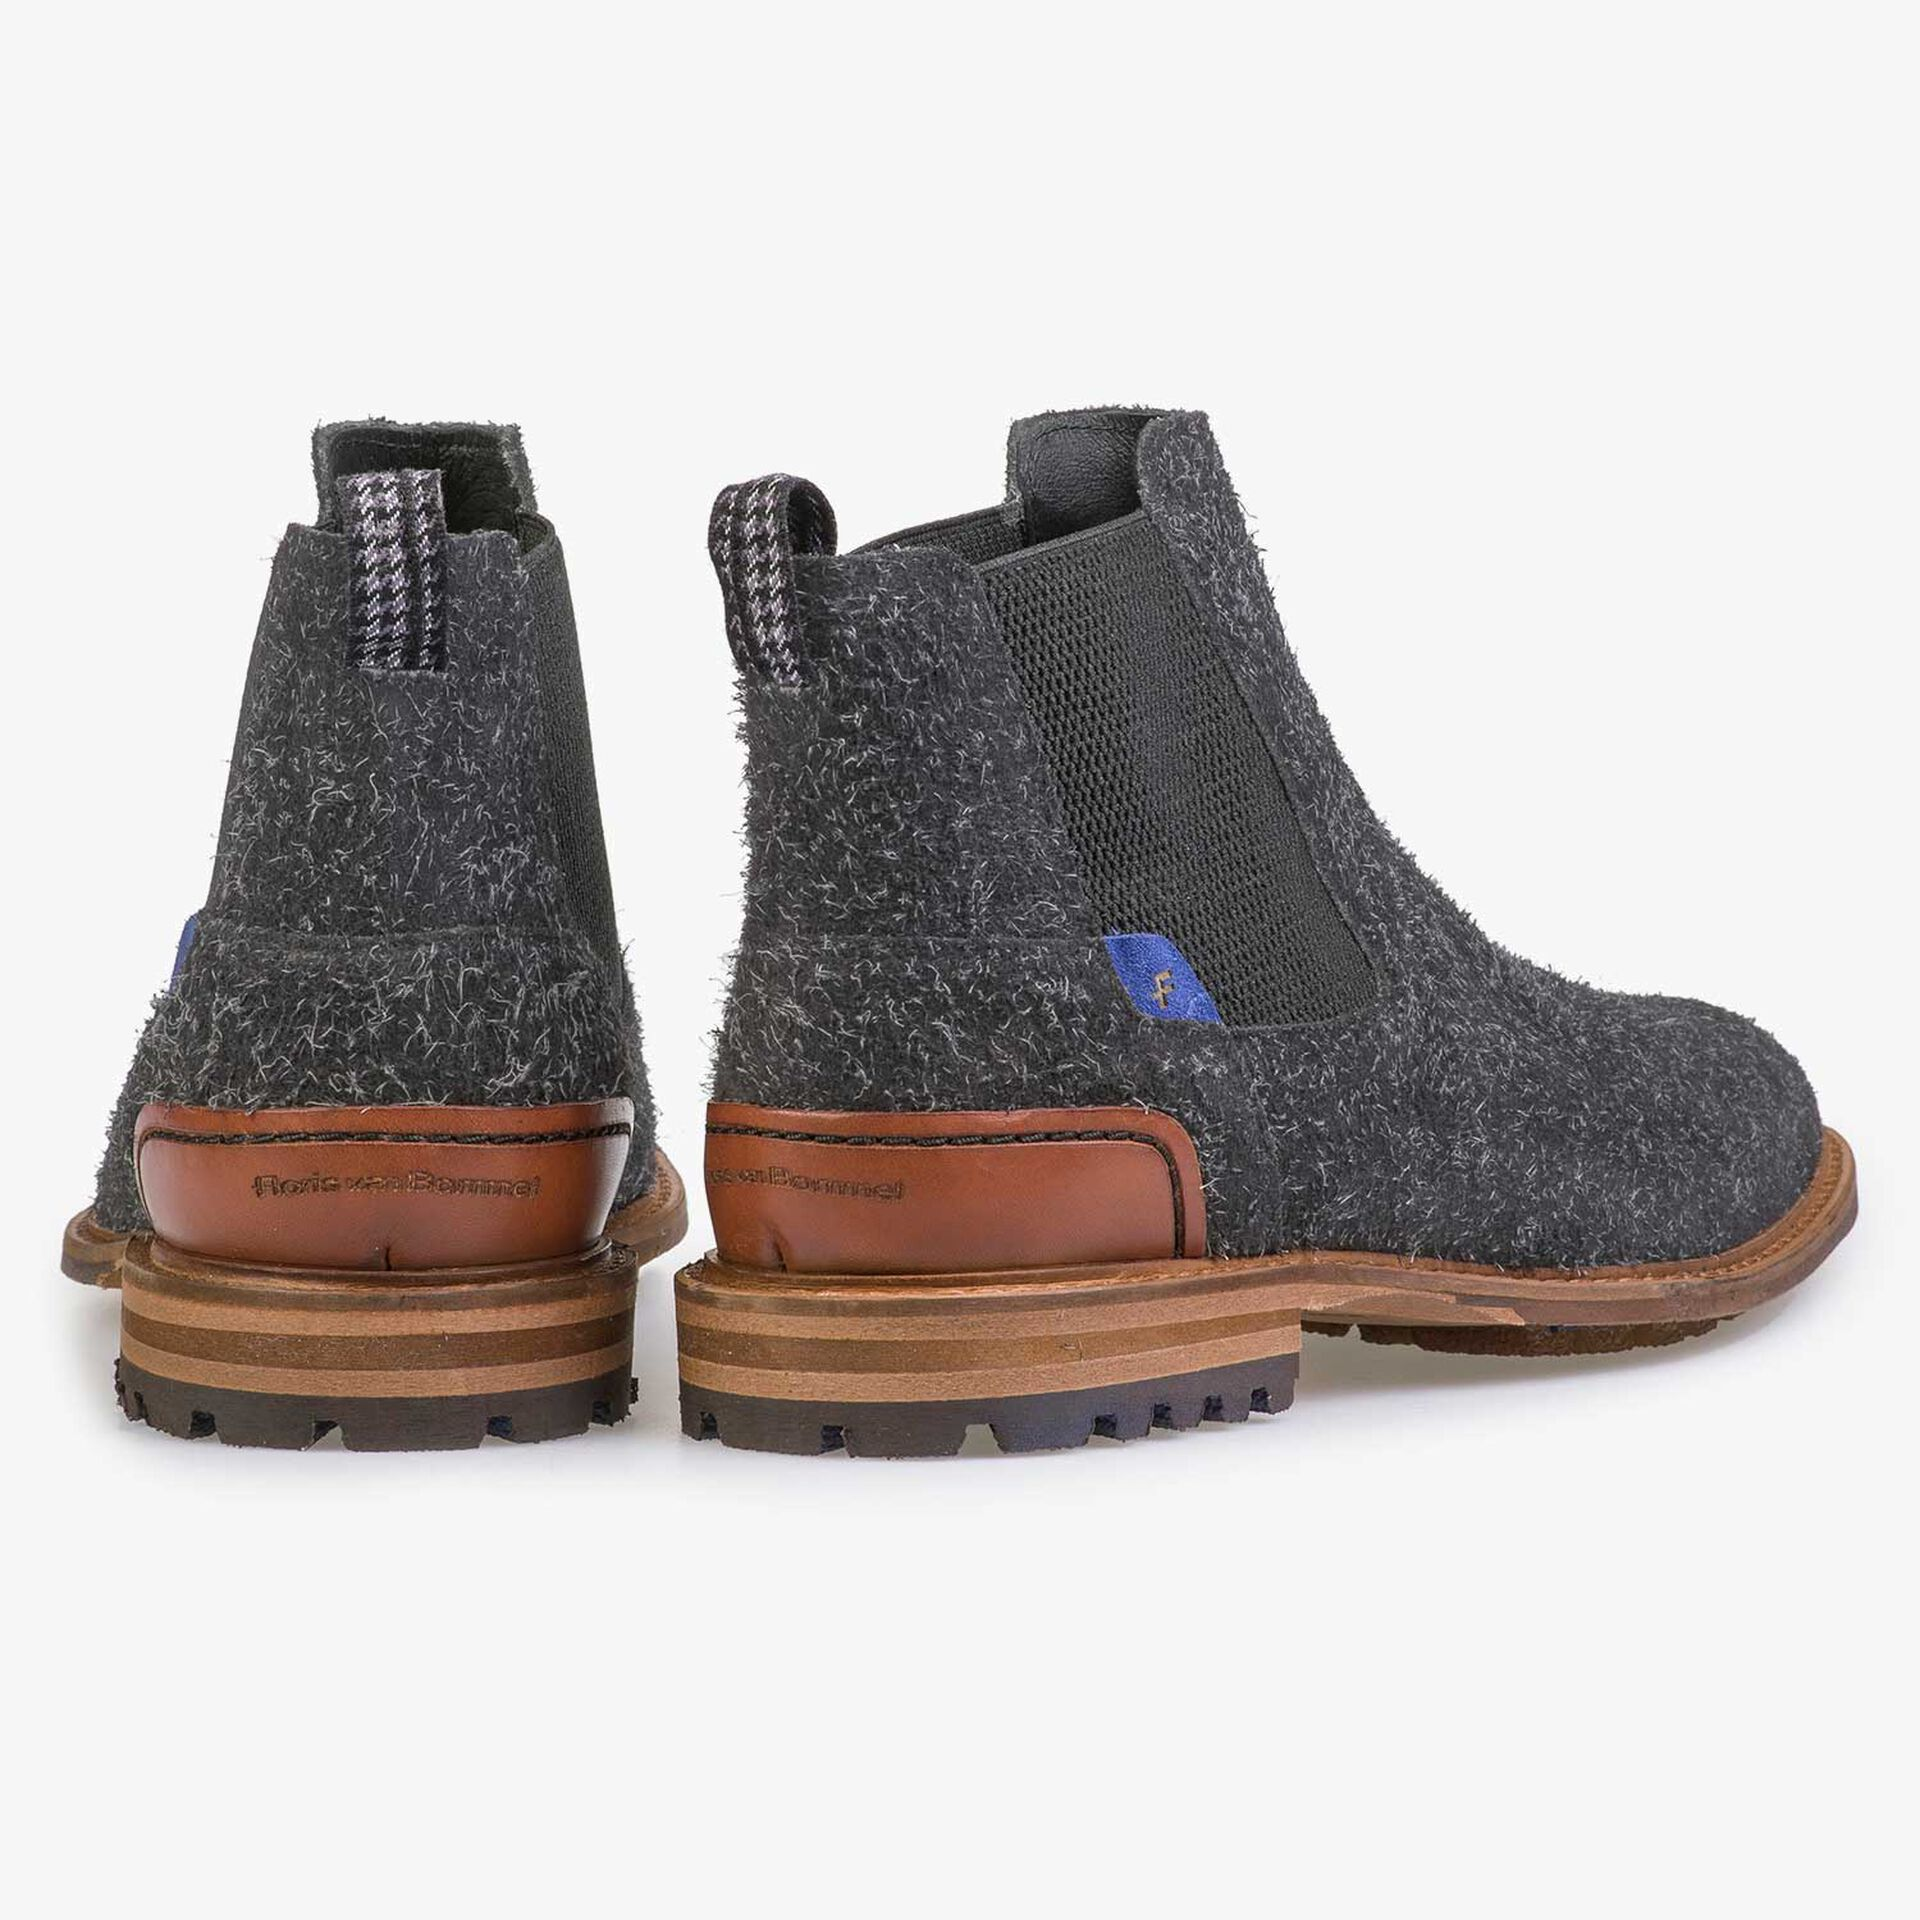 Dark grey rough Chelsea boot